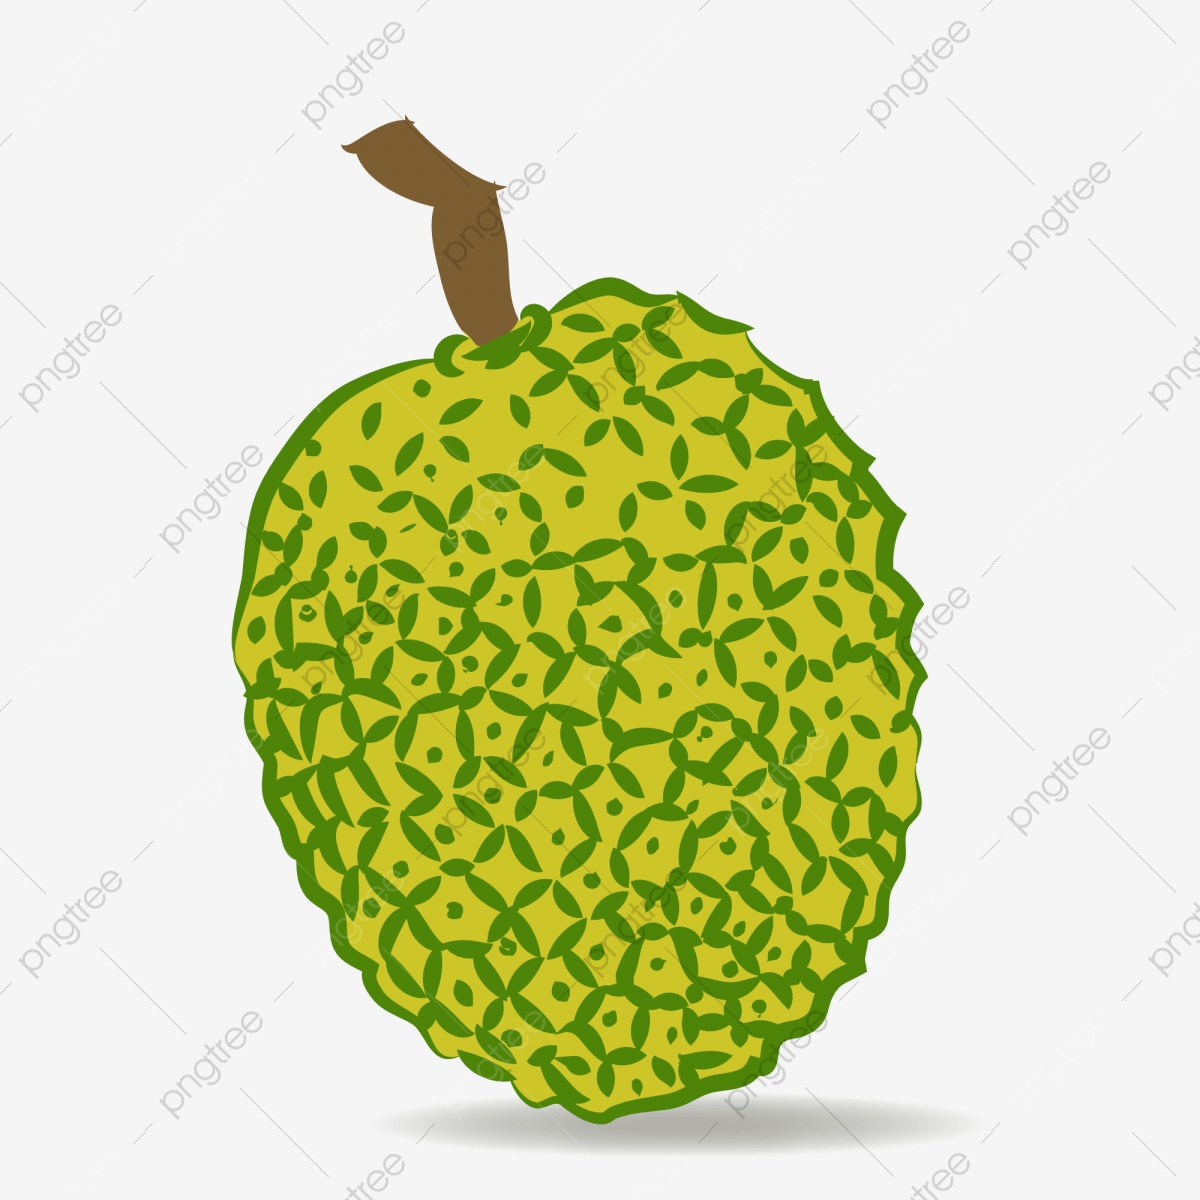 Jackfruit Fruit Plant Green Png And Vector With Transparent Background For Free Download 24,016 🌲 best cartoon tree ✅ free vector download for commercial use in ai, eps, cdr, svg vector illustration graphic art design format.tree, cartoon forest, tree vector, cartoon, cartoon bird, cartoon flowers, tree silhouette, tree isolated, cartoon clouds, cartoon animals, cartoon background cartoon. https pngtree com freepng jackfruit 872999 html